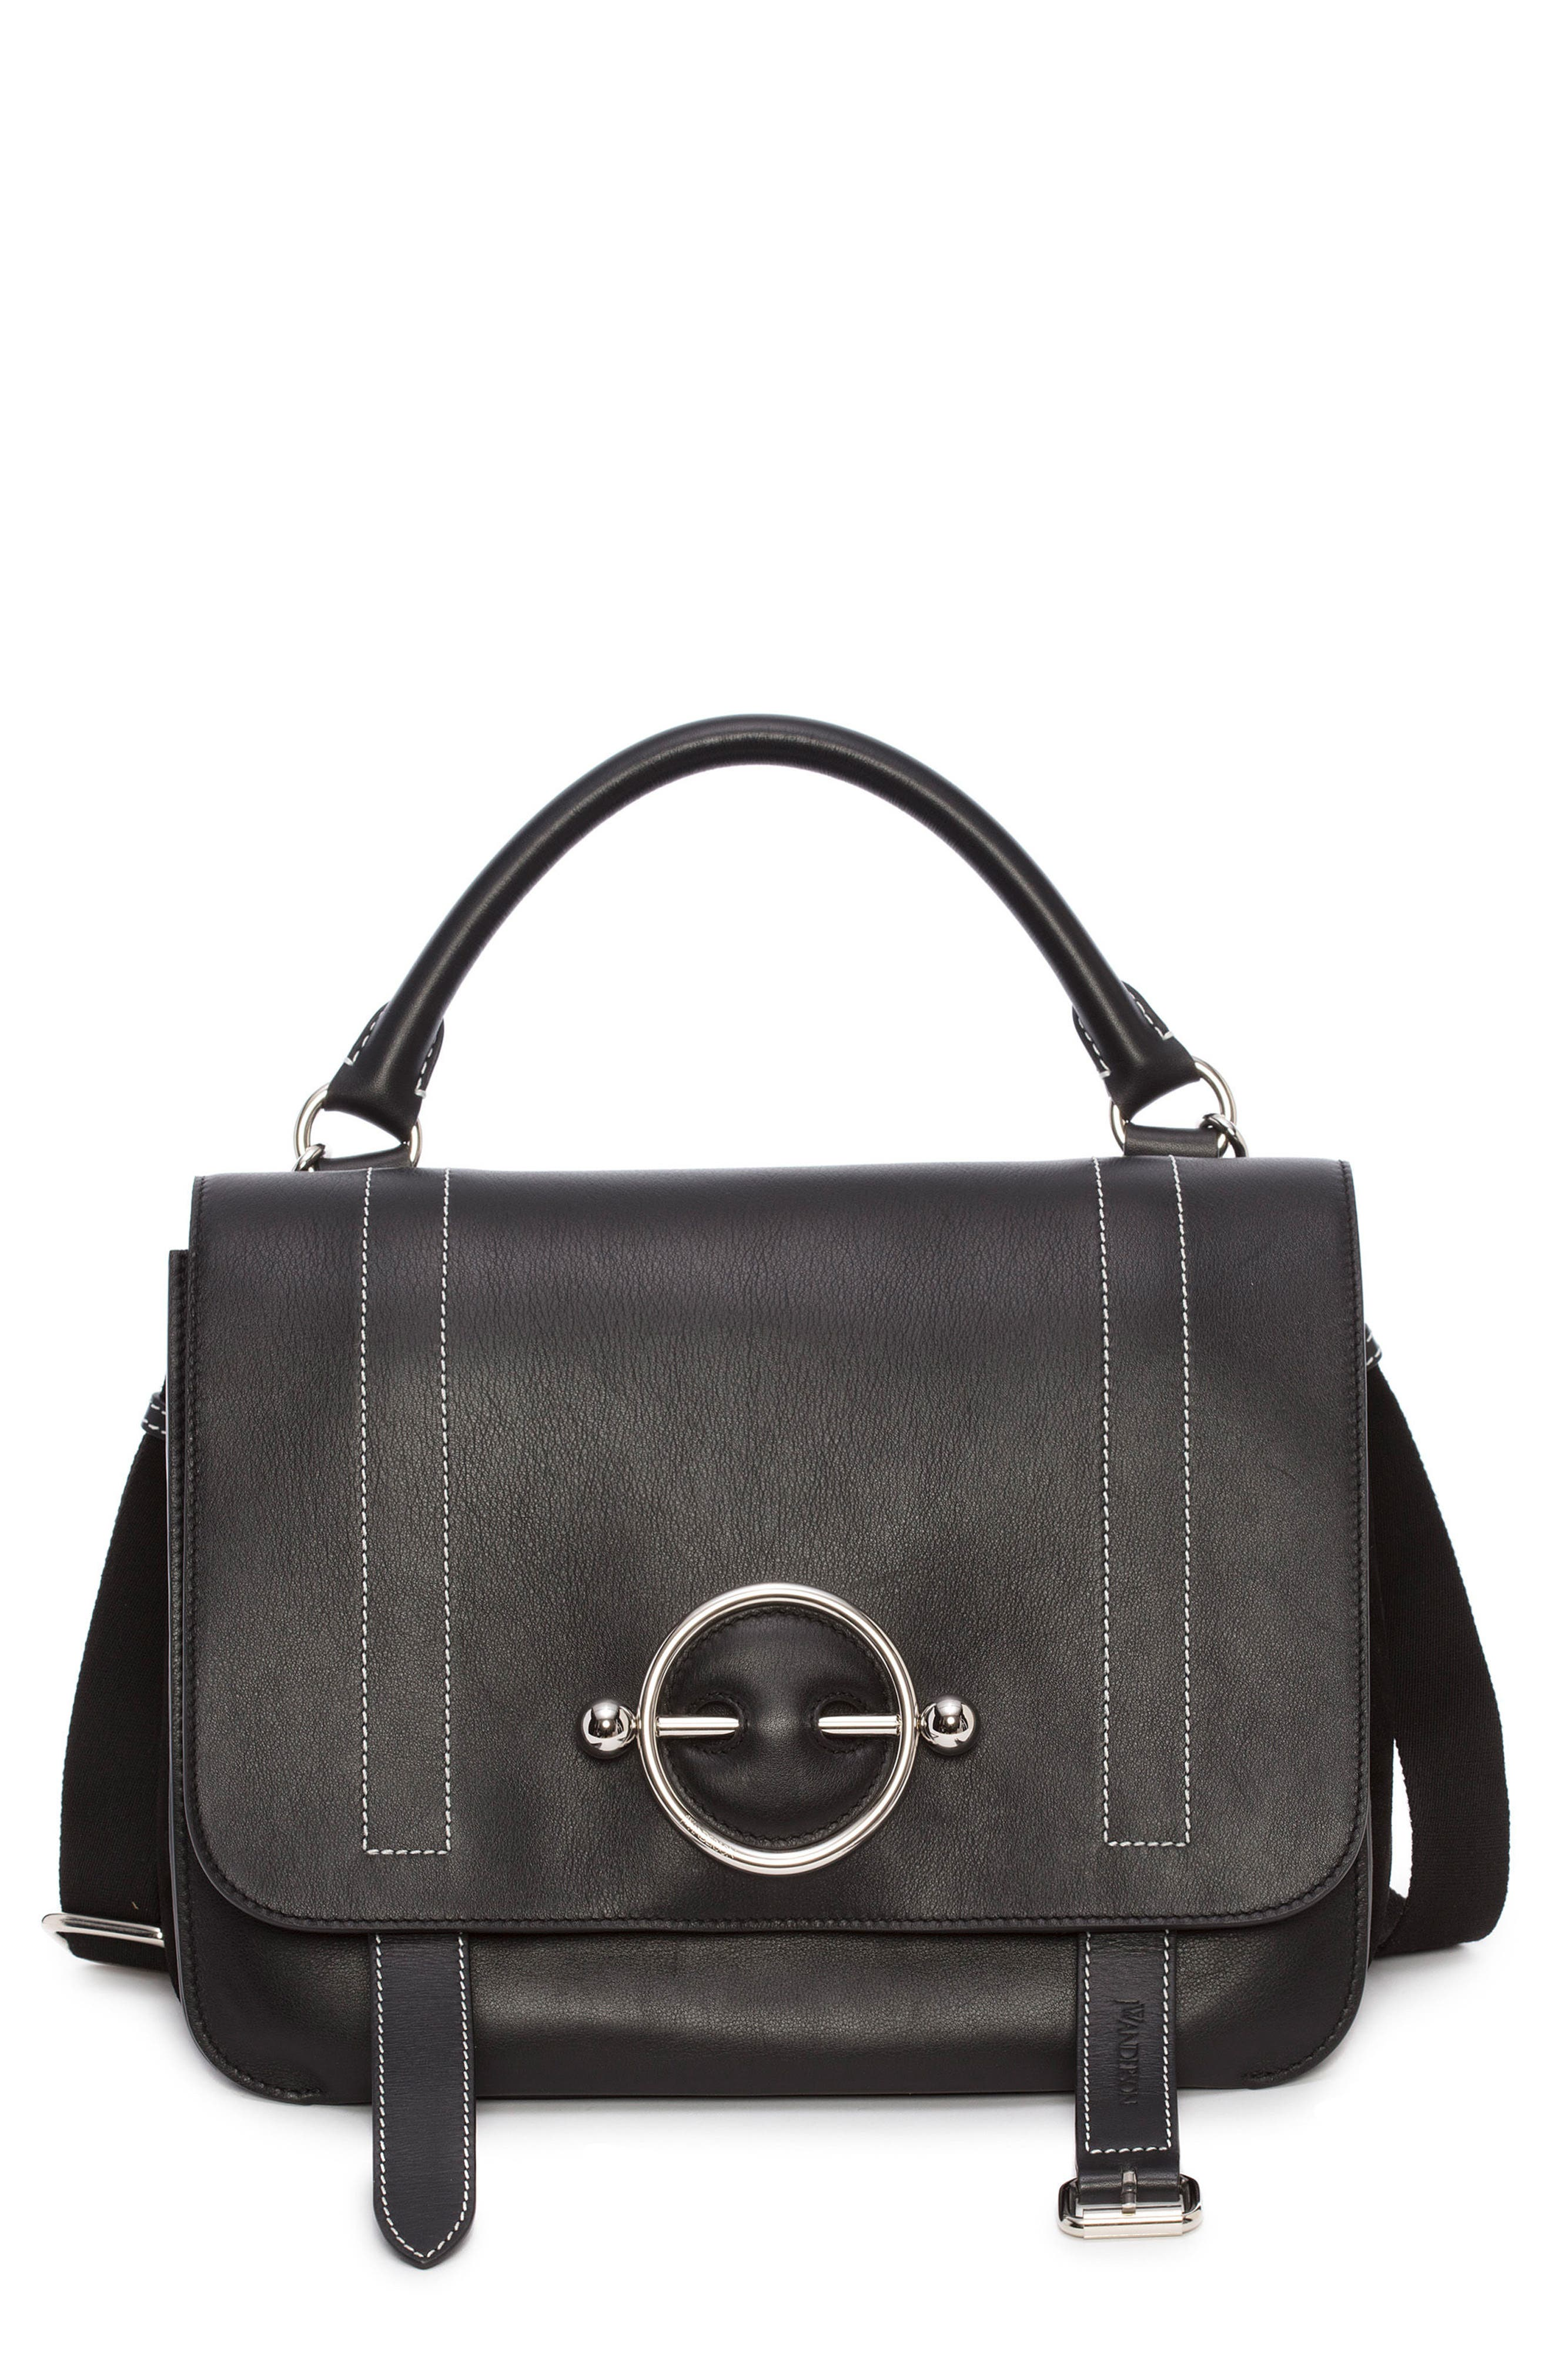 J.W.ANDERSON Disc Leather Top Handle Satchel